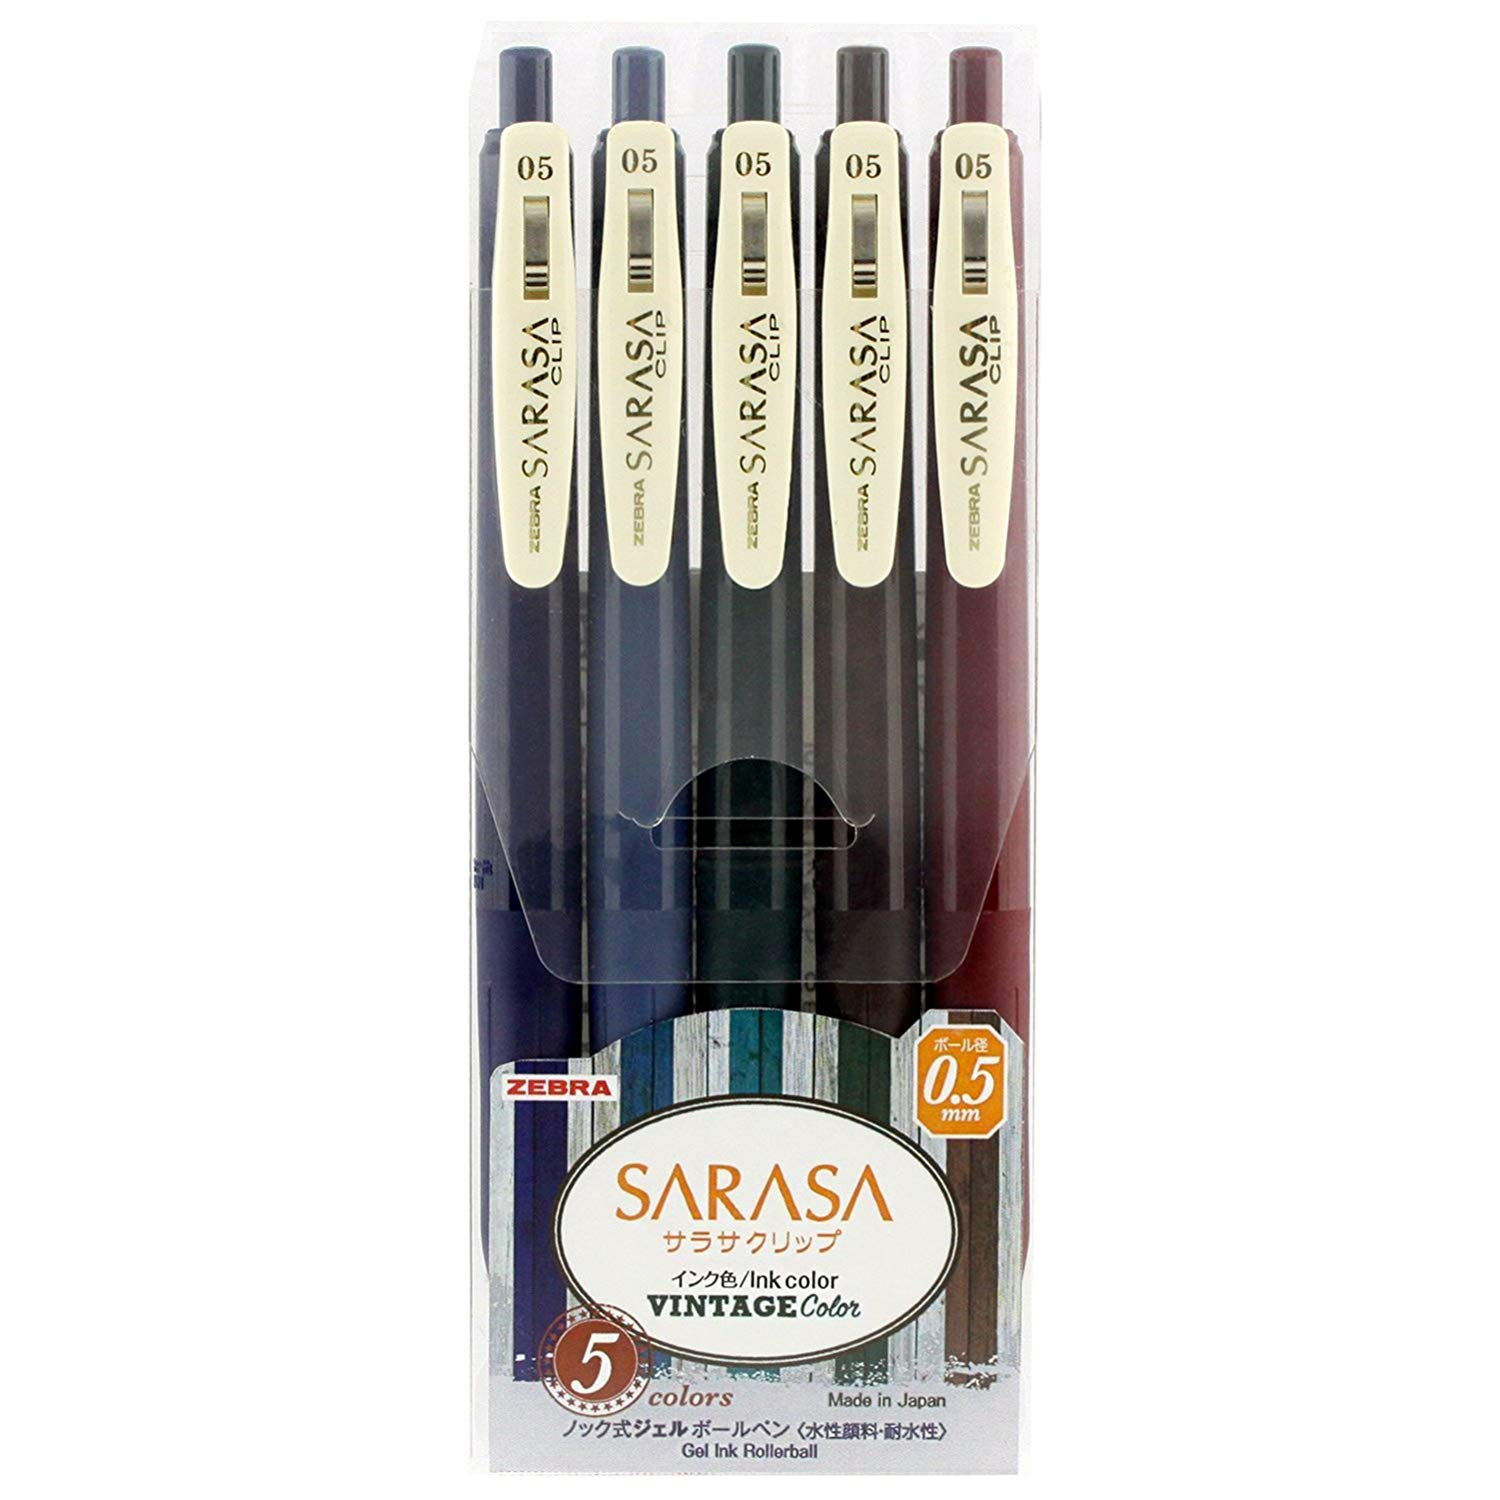 Zebra Sarasa Clip 0.5 Retractable Gel Ink Pen Rubber Grip 0.5 Mm Vintage Colors 5 Color Set